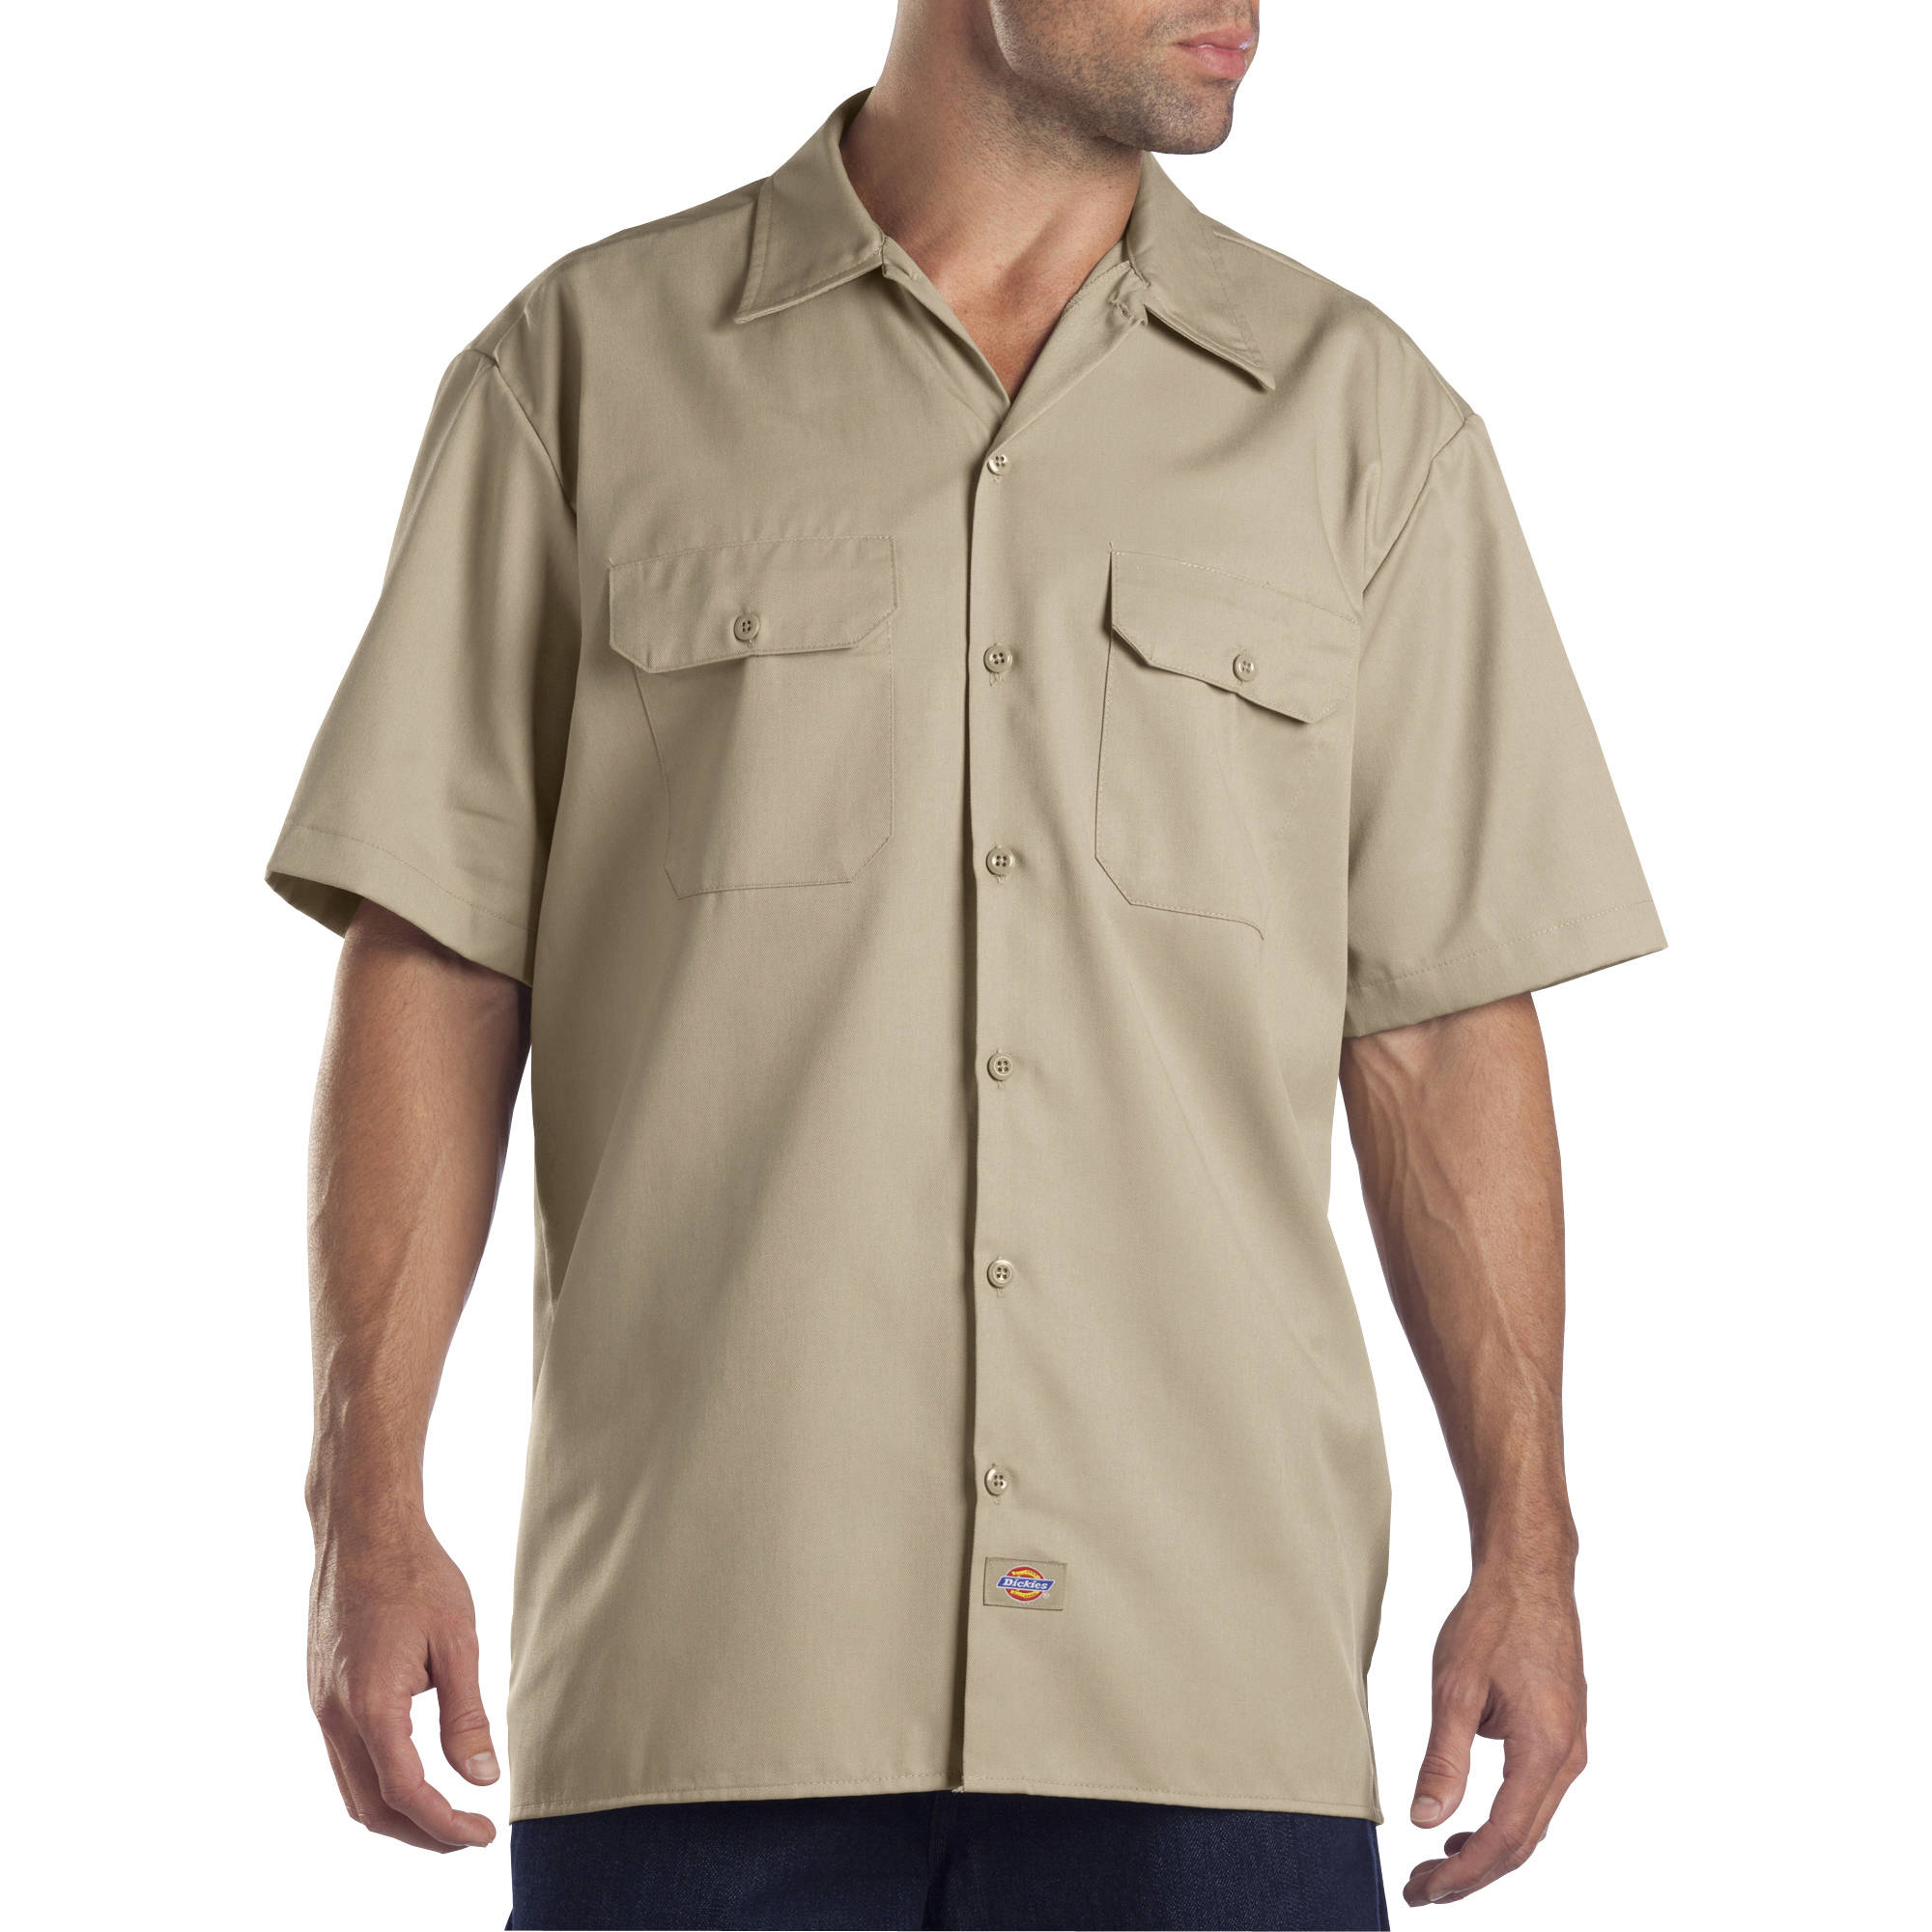 Dickies Big and Tall Men's Short Sleeve Twill Work Shirt - Walmart.com